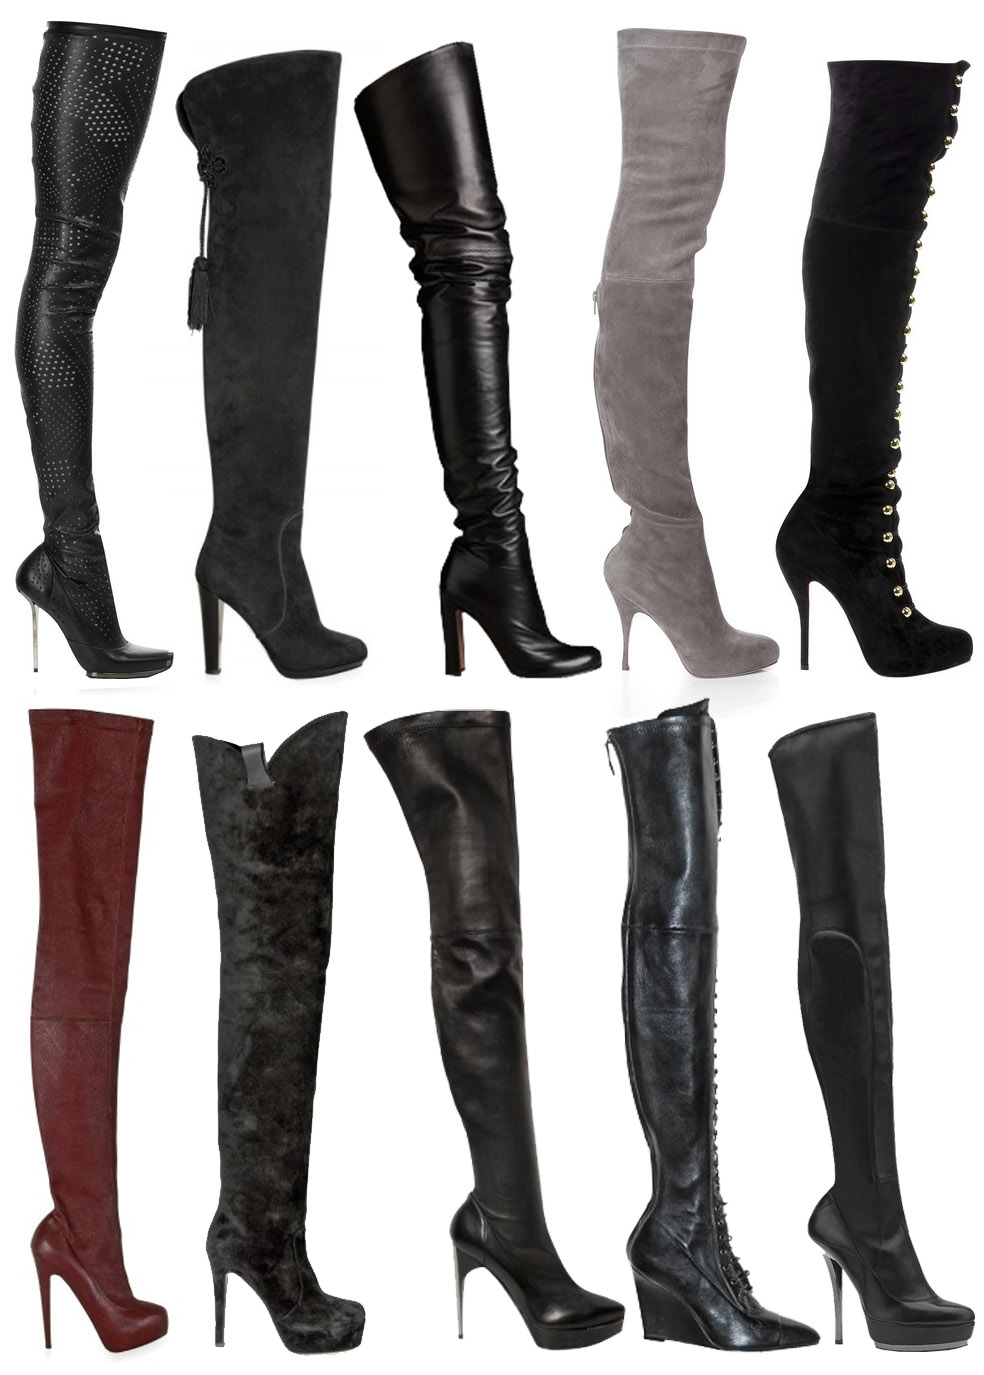 GLAMOUR &amp PEARLS: My Obsession with Thigh High Boots...